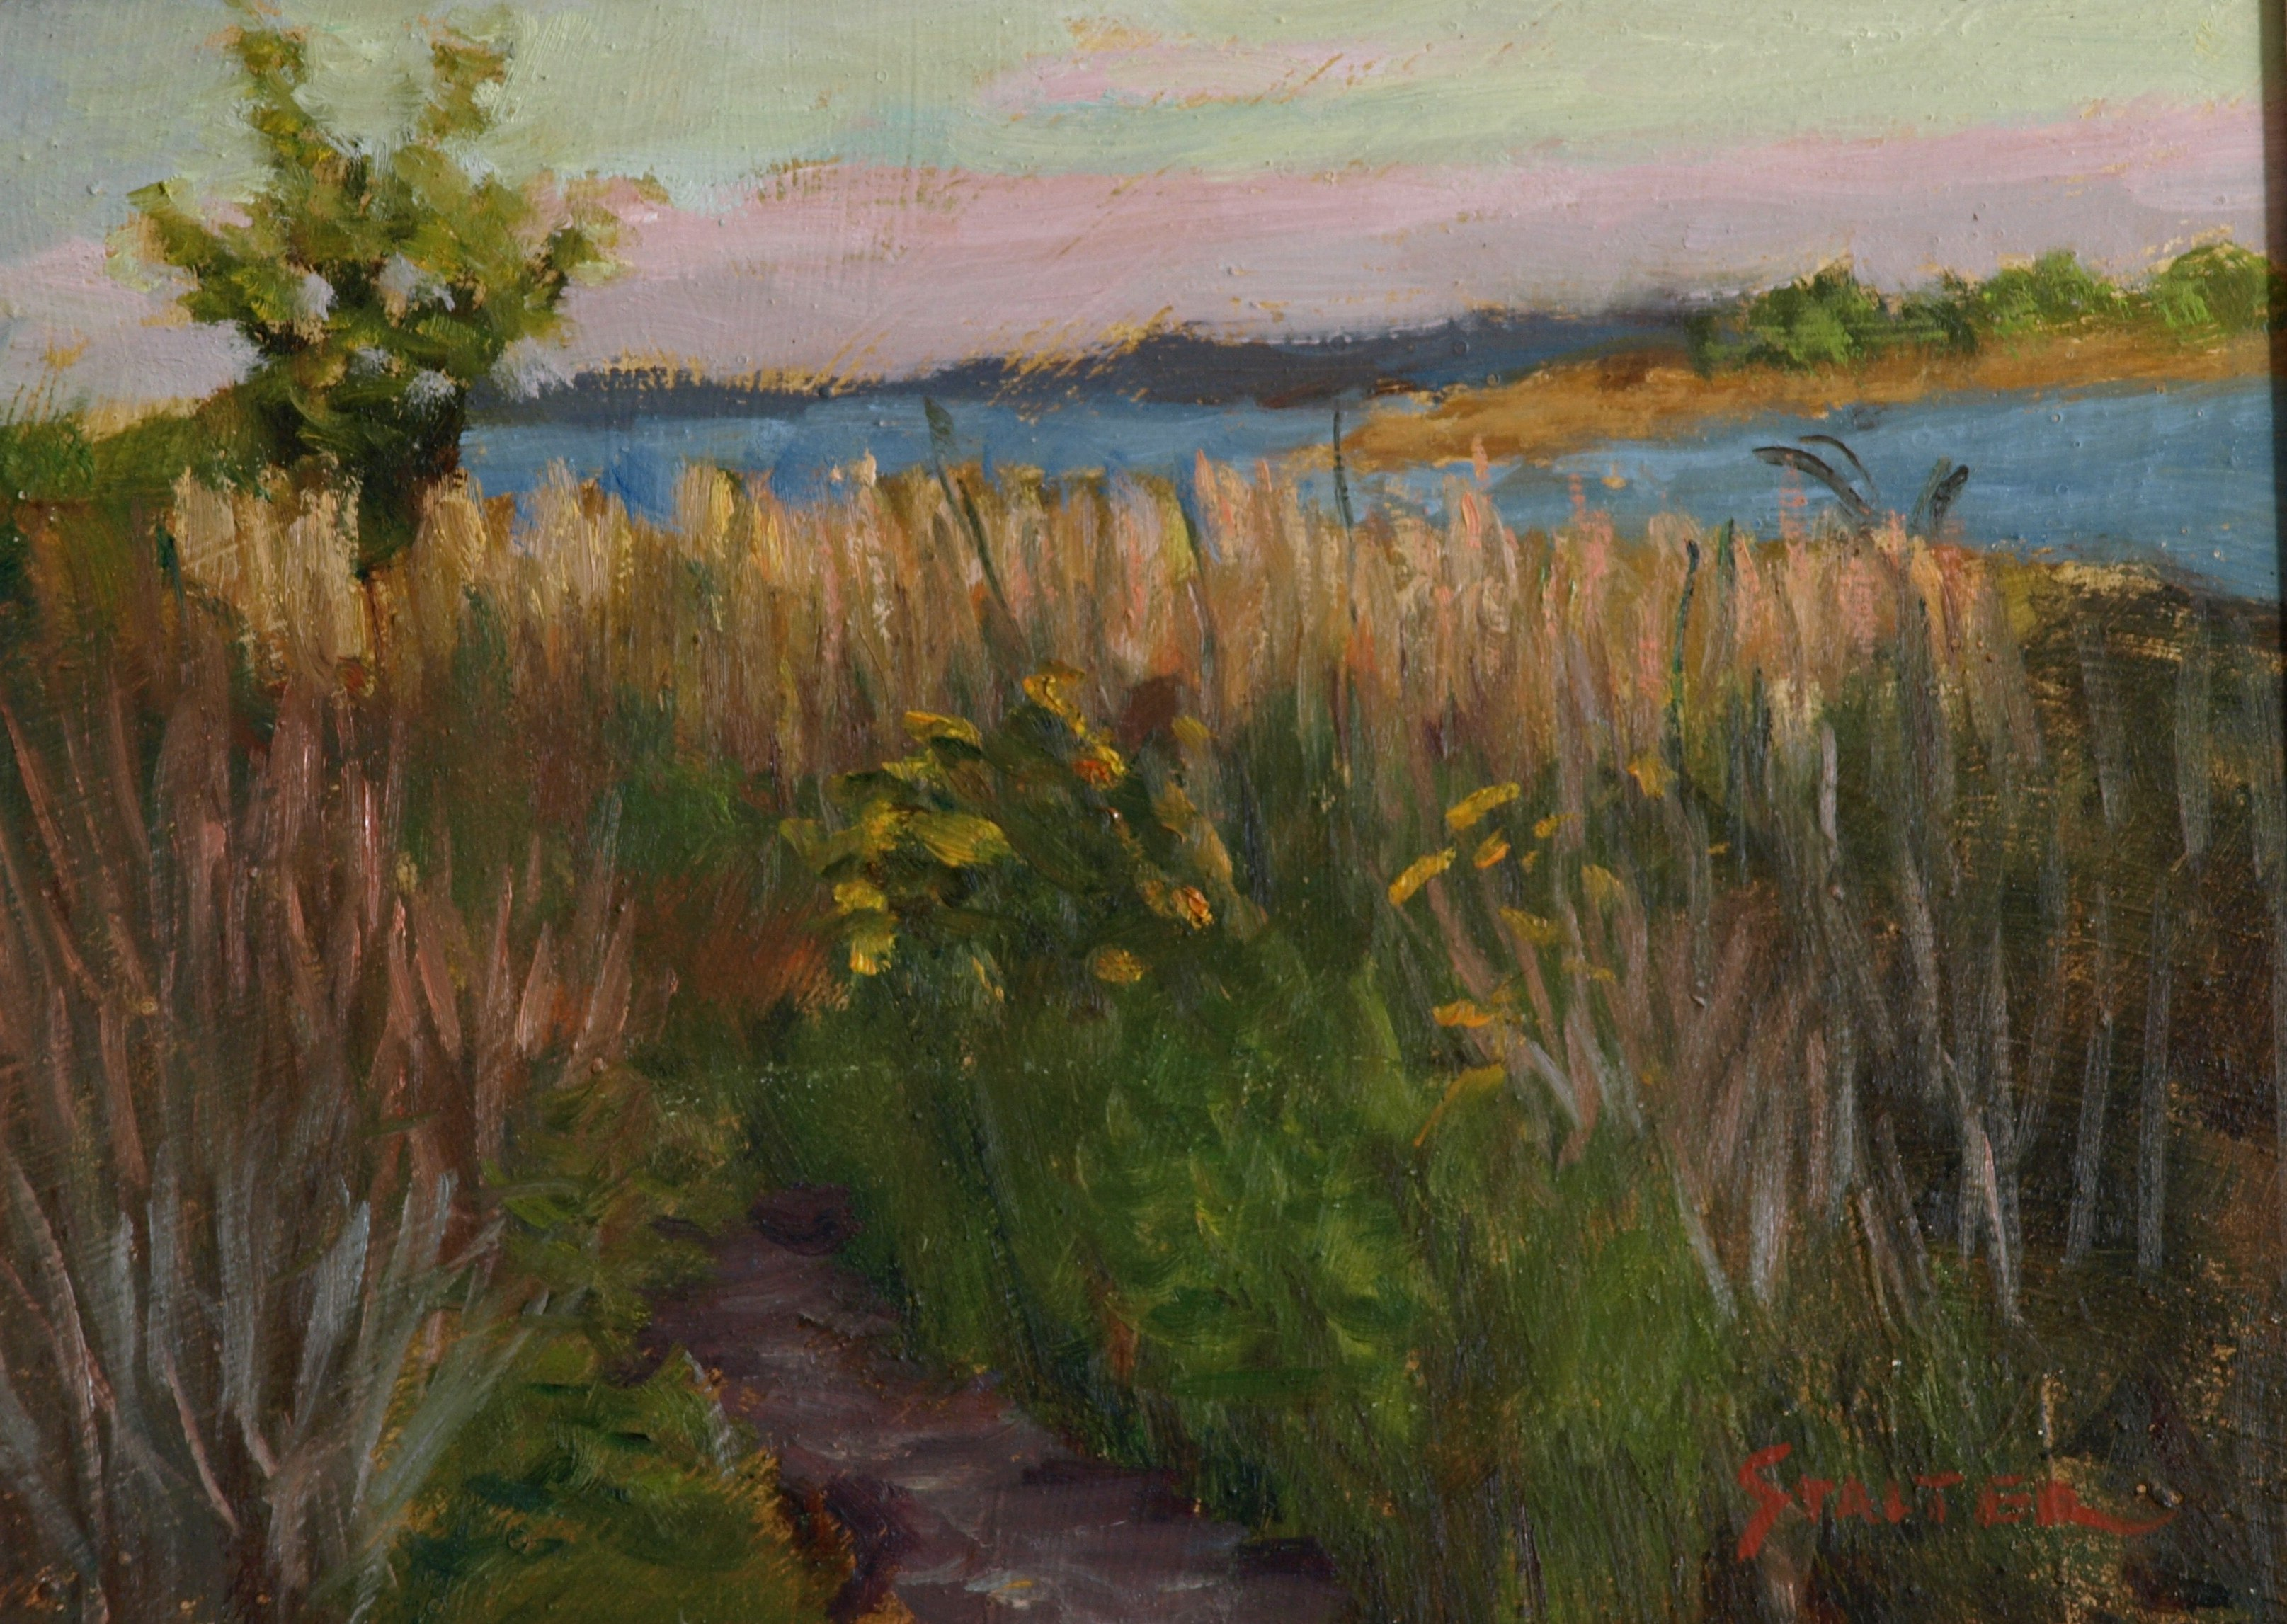 Marsh Pathway, Oil on Panel, 9 x 12 Inches, by Richard Stalter, $225